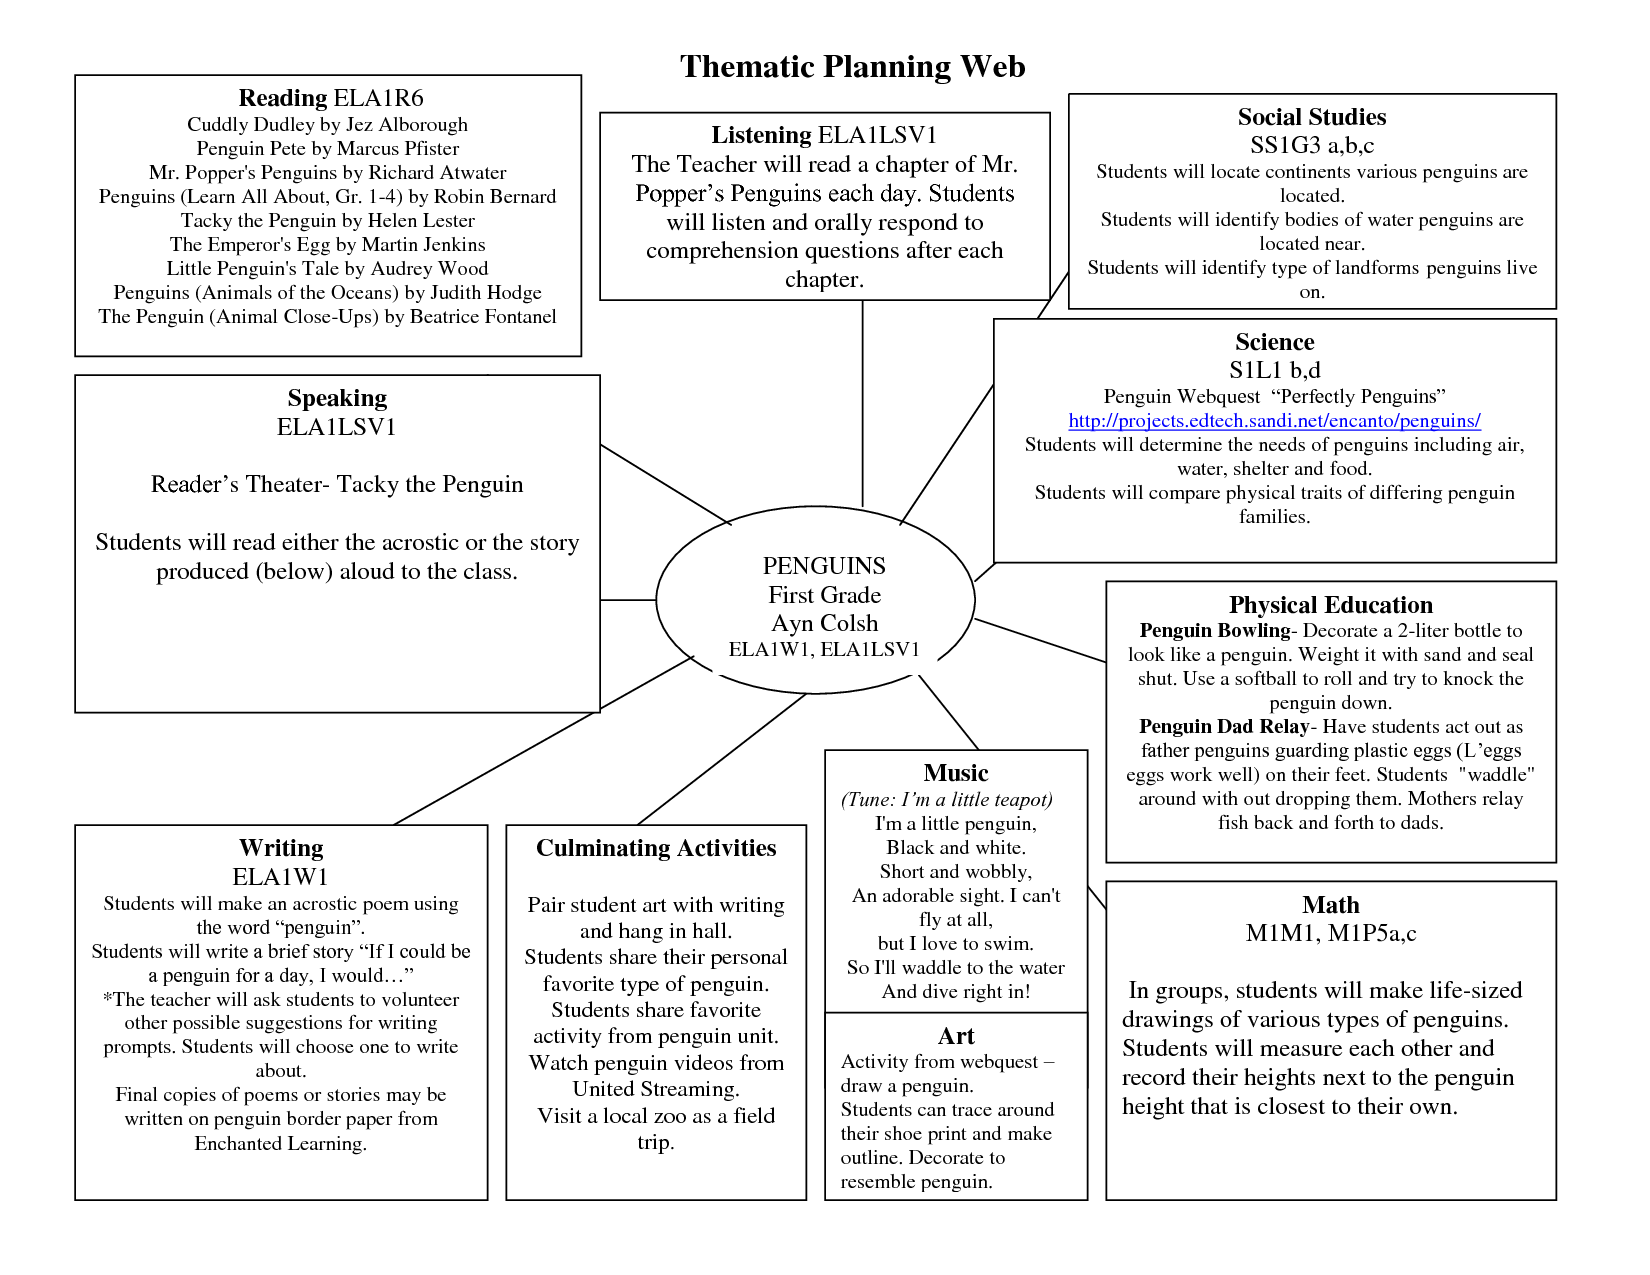 Planning web template penguins thematic web littleil for Field trip lesson plan template